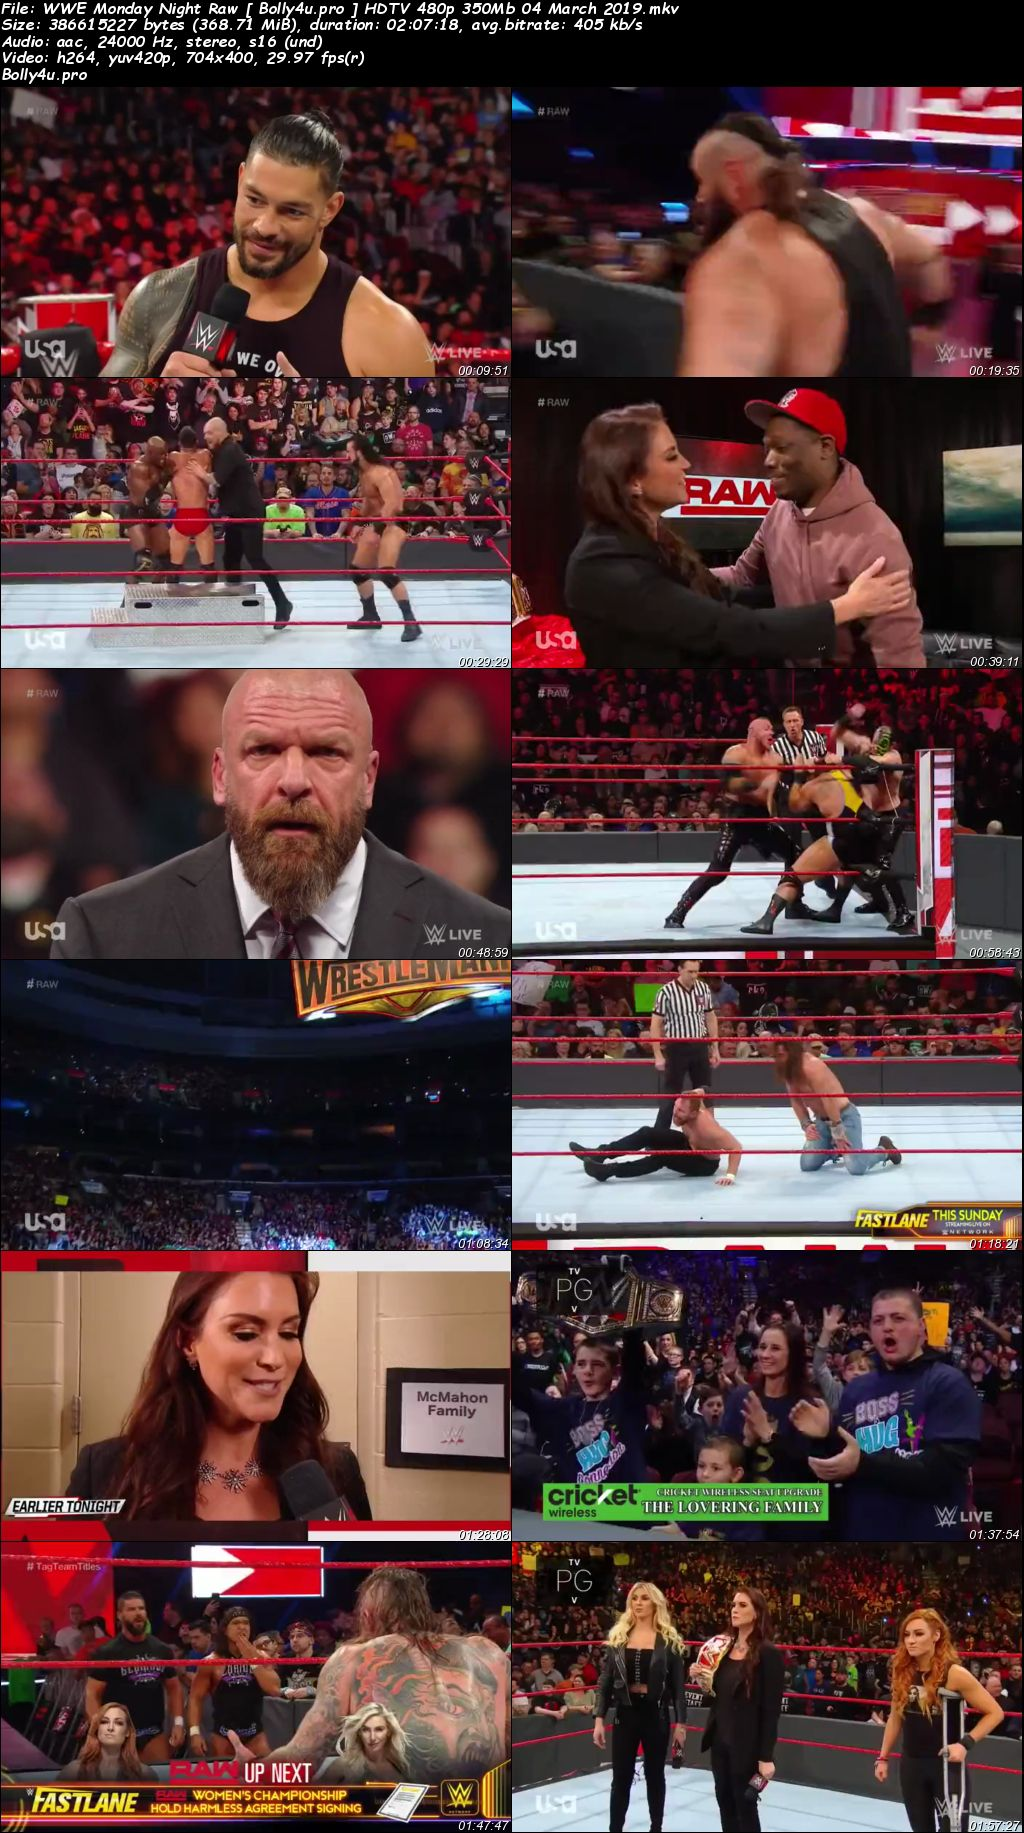 WWE Monday Night Raw HDTV 480p 350Mb 04 March 2019 Download